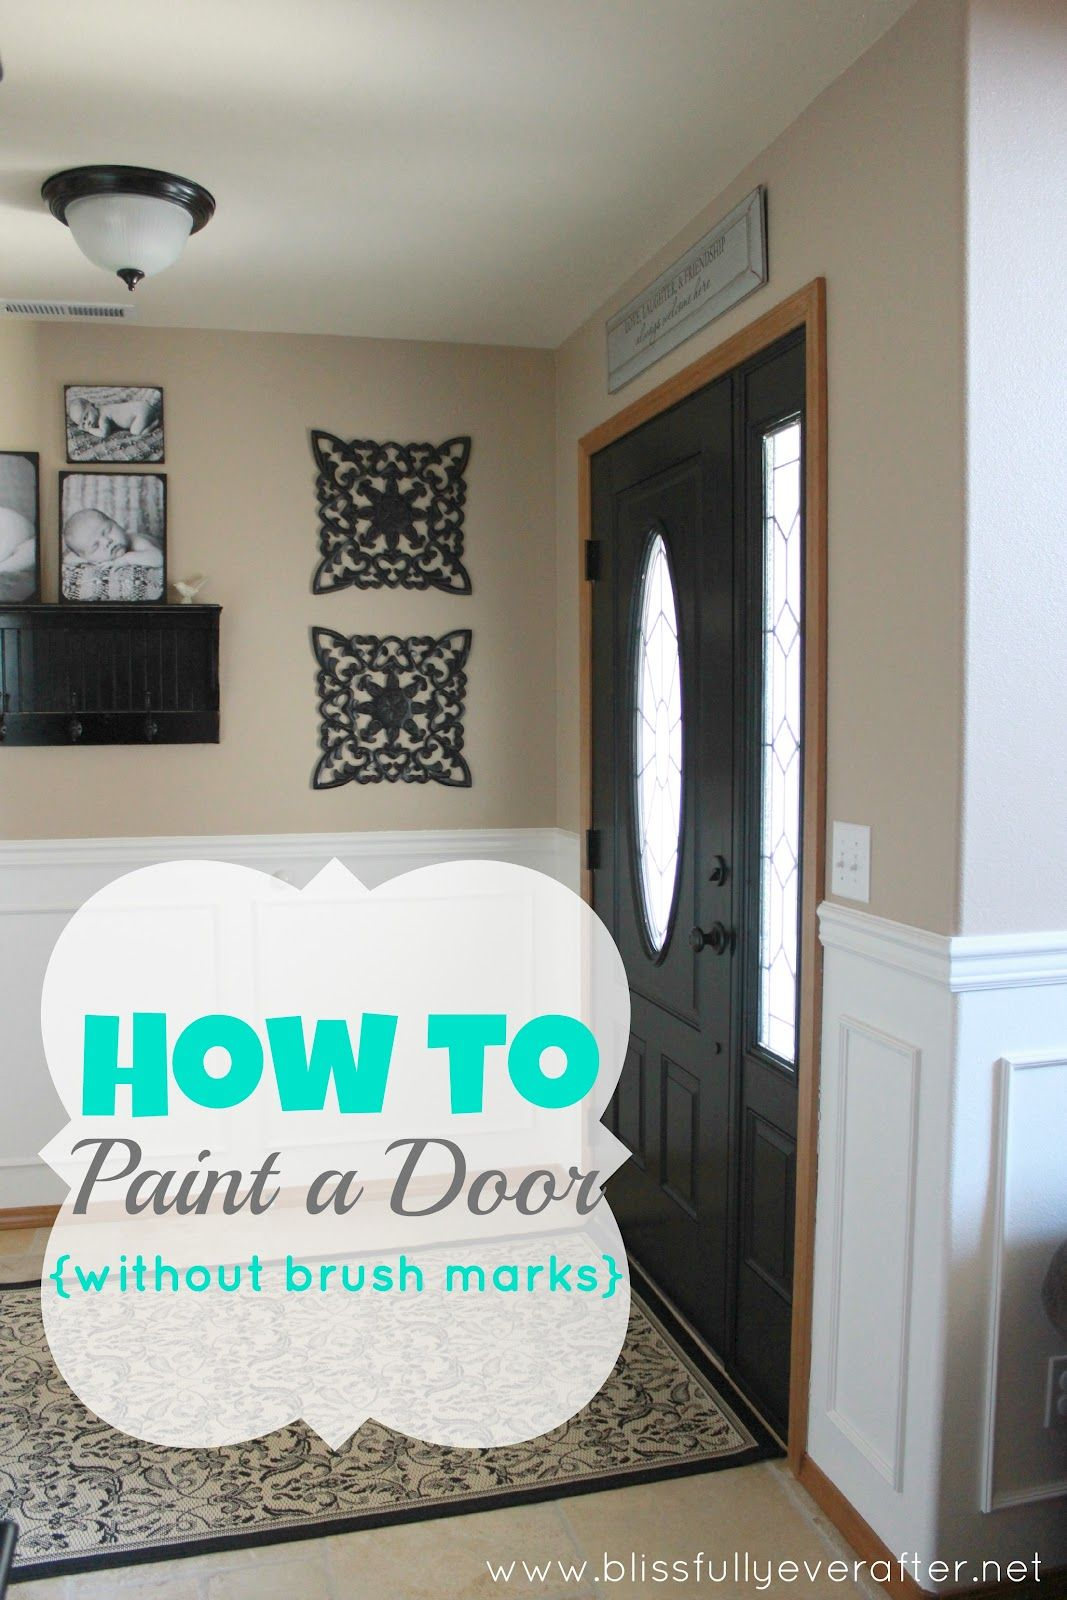 Blissfully Ever After: How to Paint a Door {without brush marks}... I asked one of my painter friends how to do this and he looked at me like I was crazy. Glad I found this.